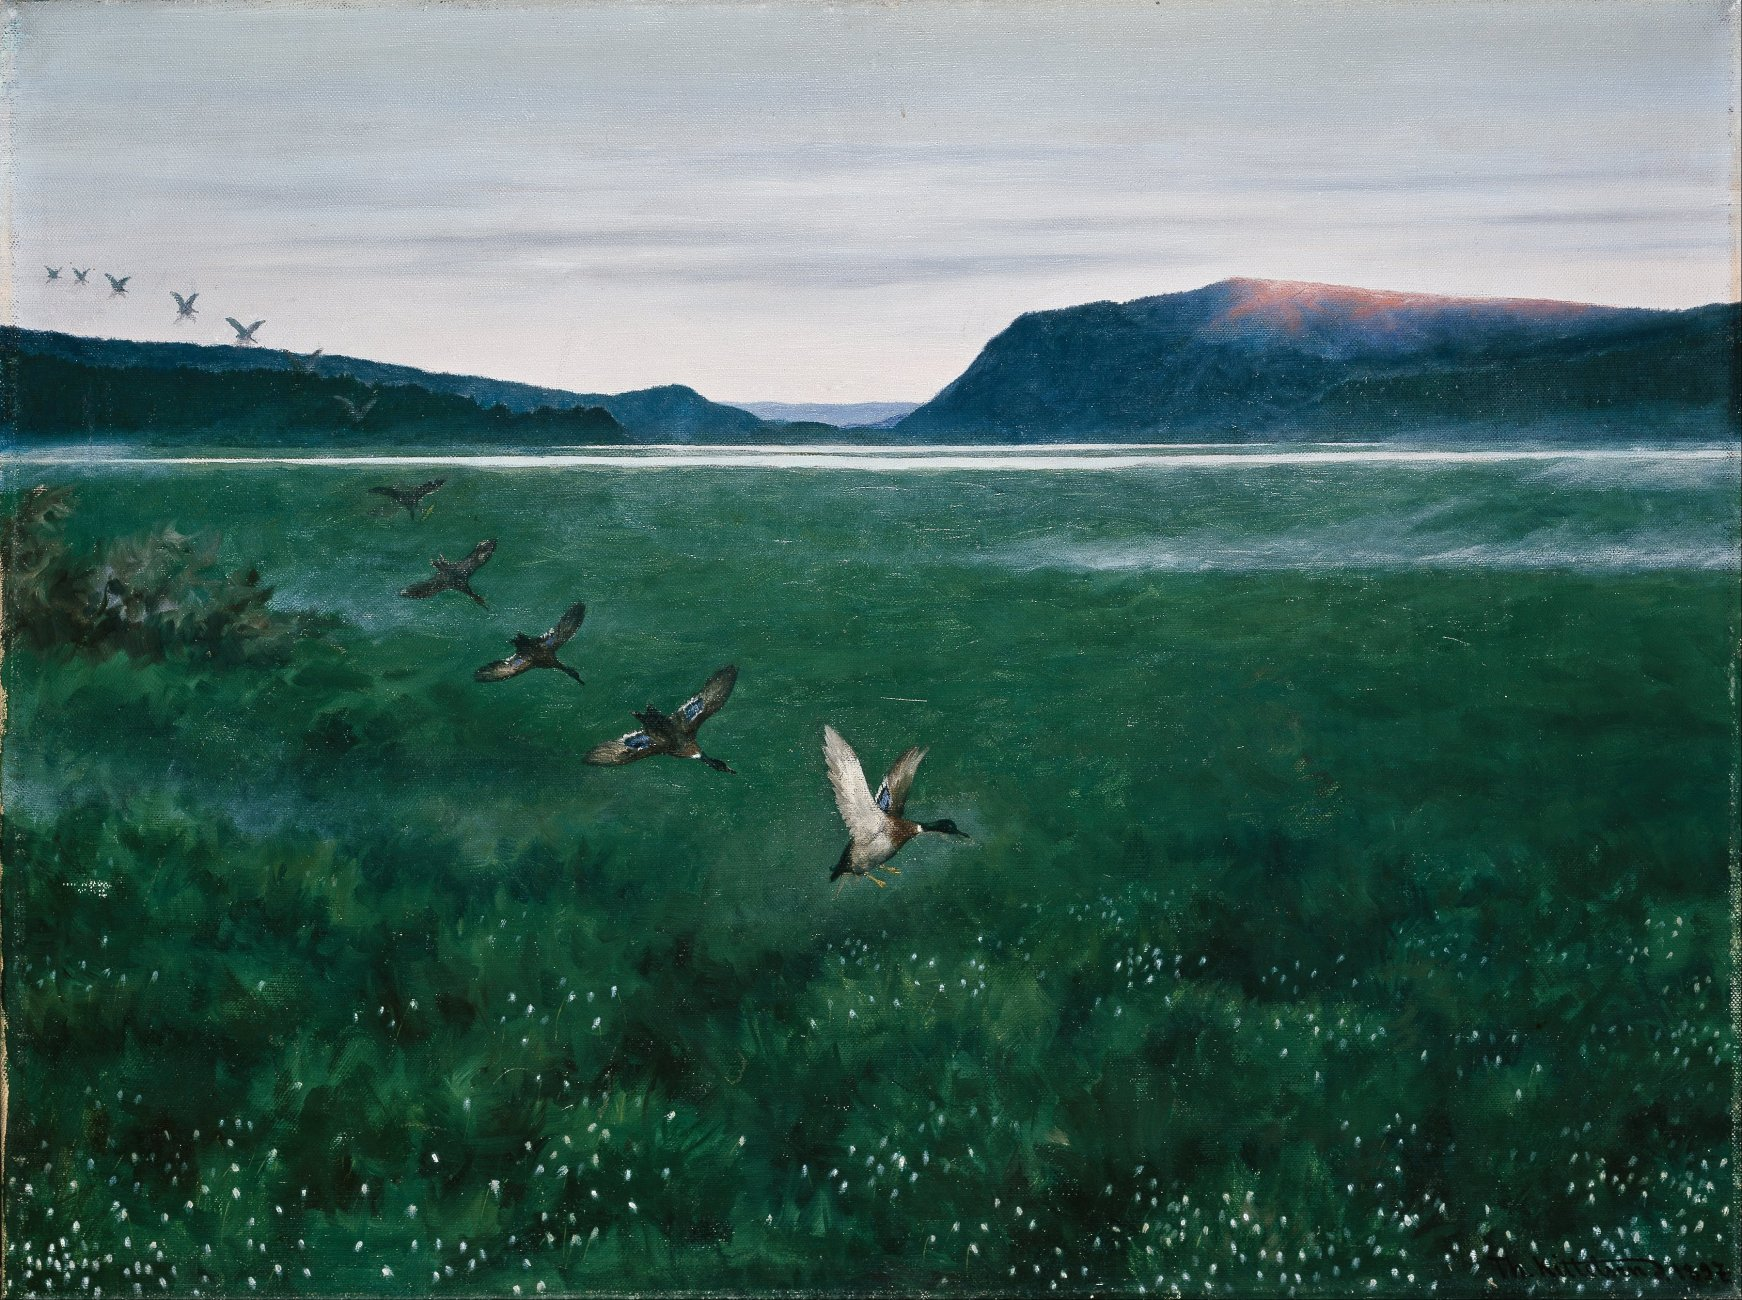 Theodor_Kittelsen_-_The_twelwe_wild_Ducks_-_Google_Art_Project.jpg